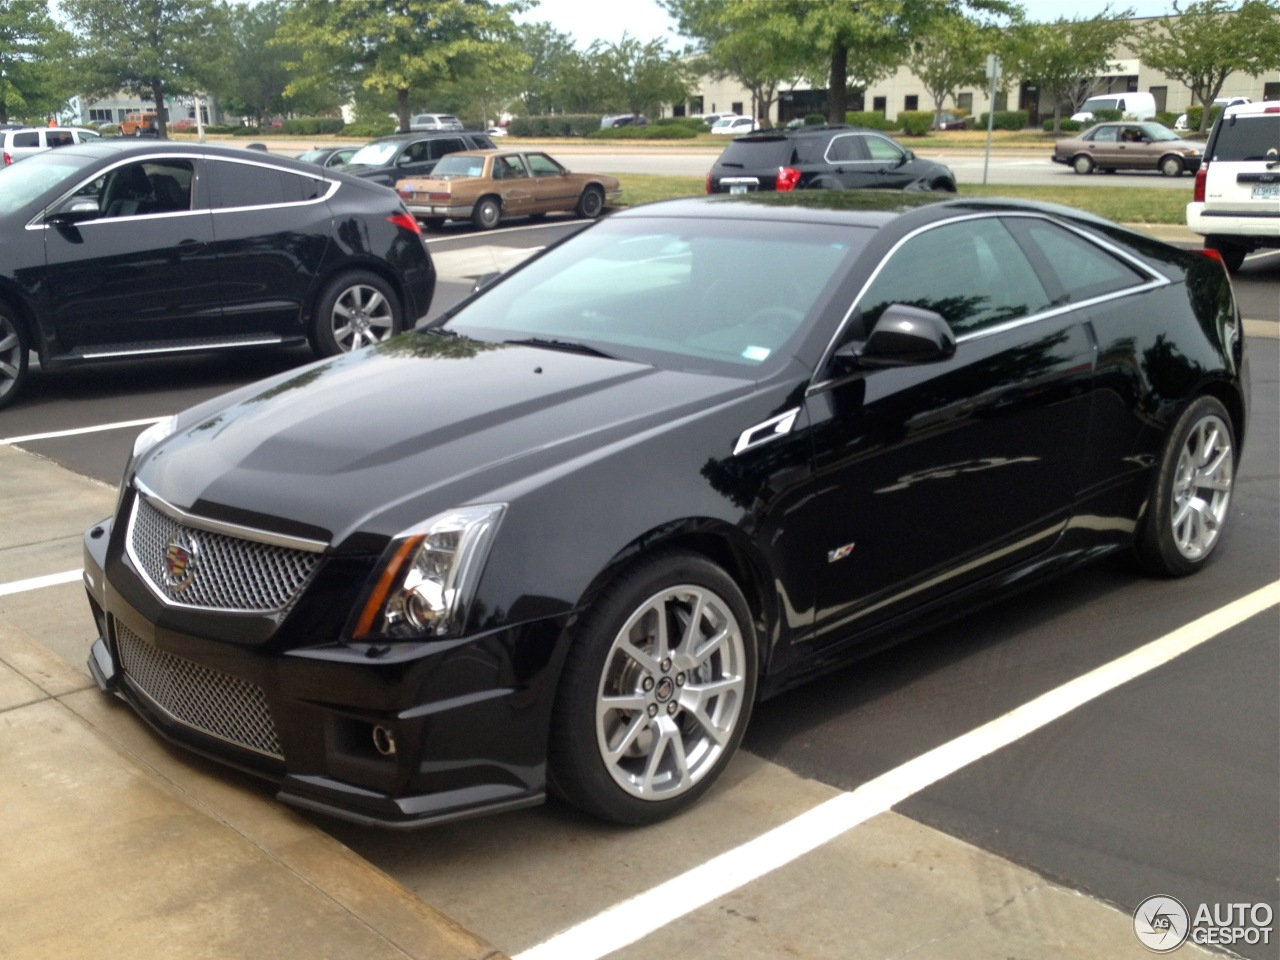 cadillac cts v coup 11 december 2012 autogespot. Black Bedroom Furniture Sets. Home Design Ideas